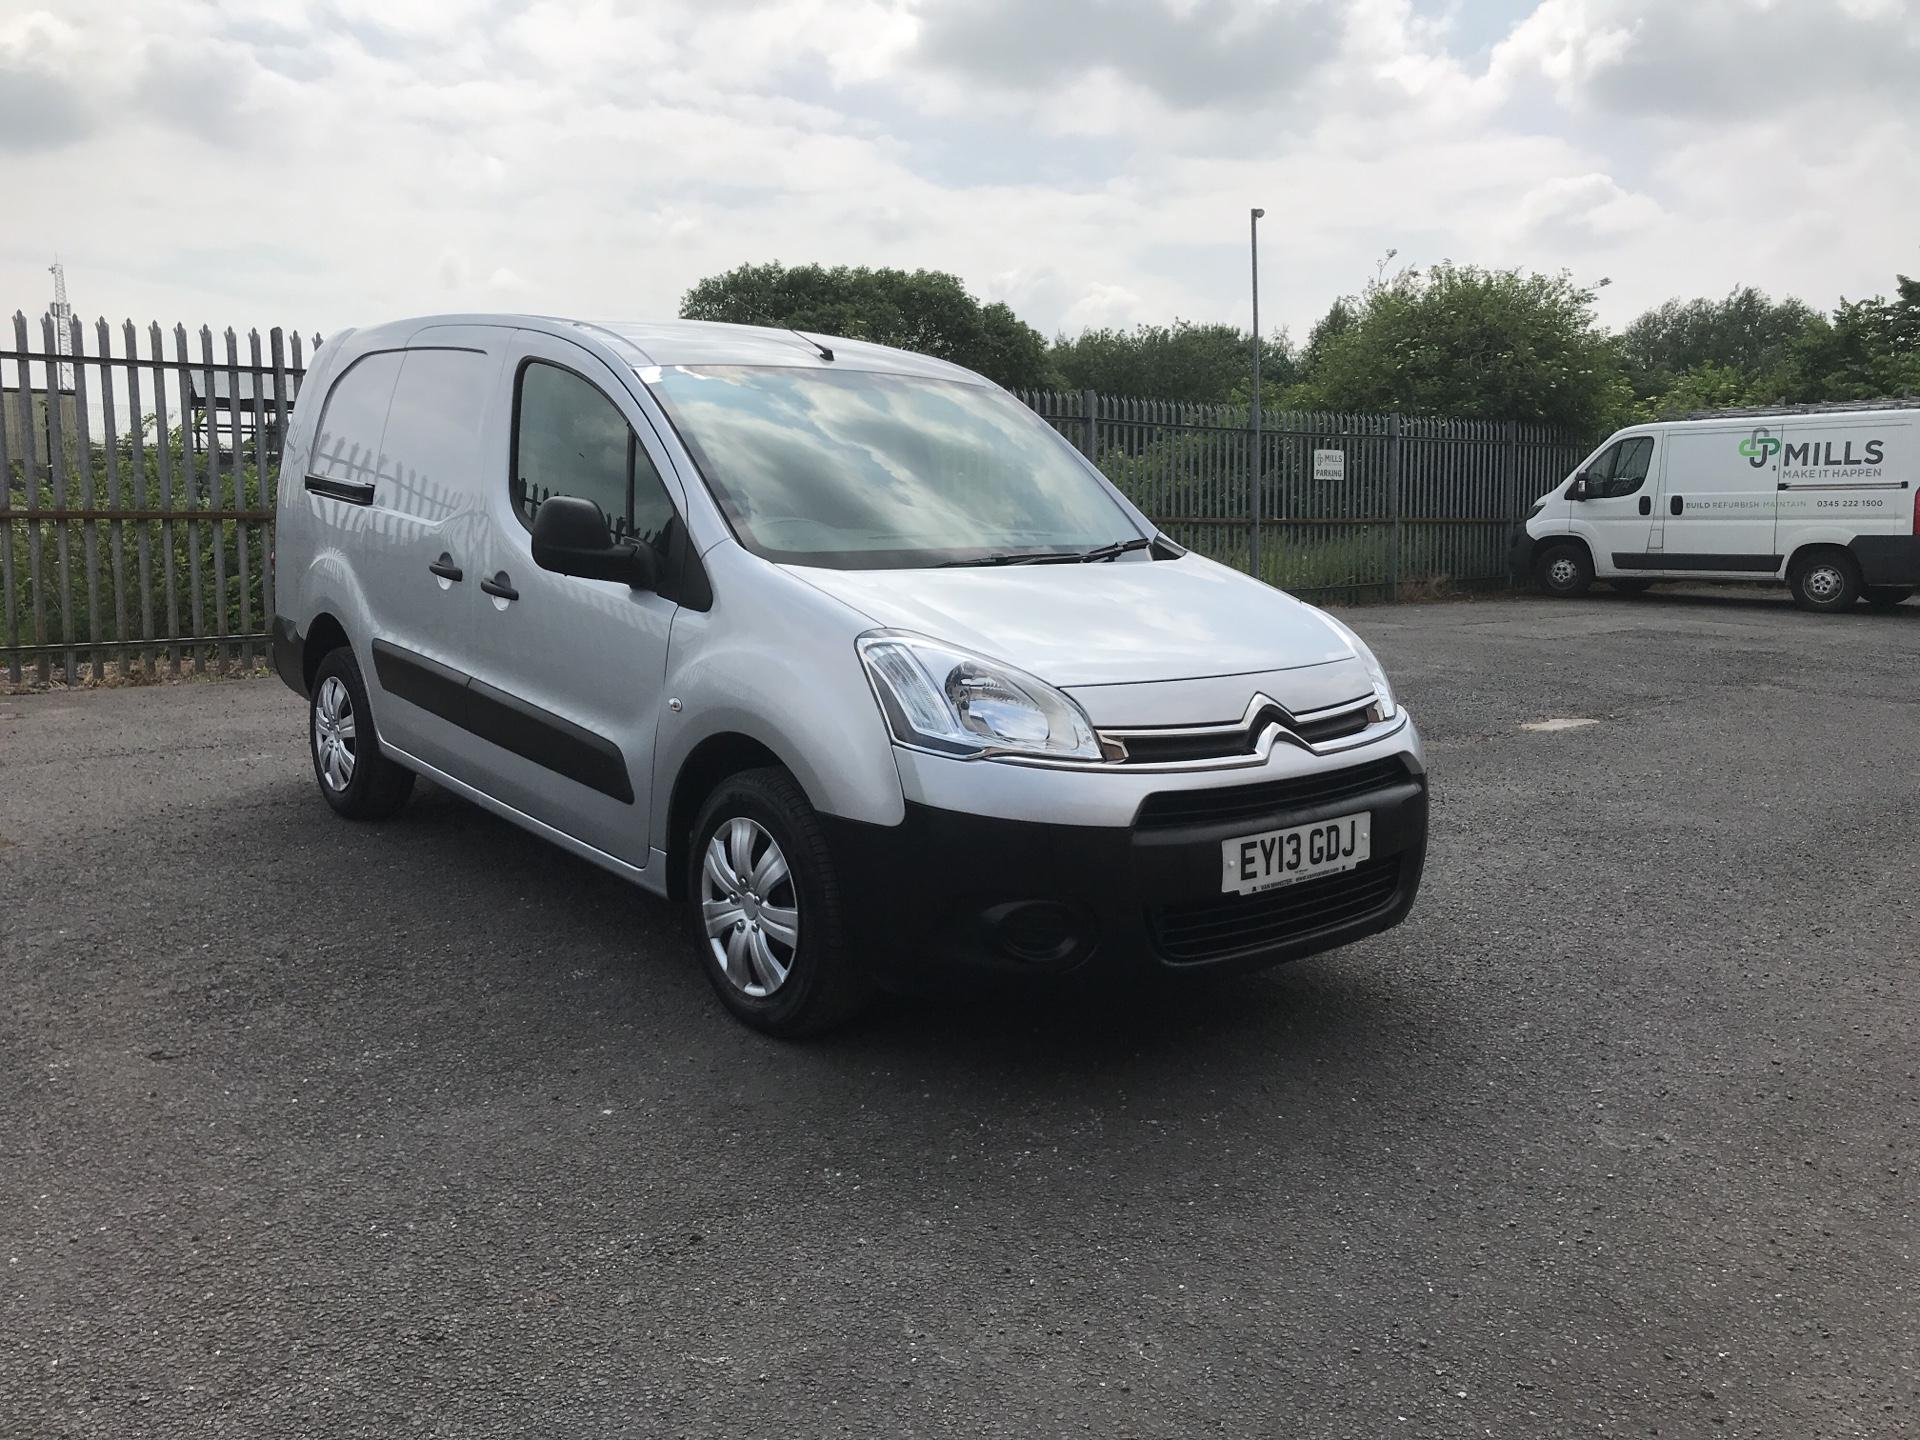 2013 Citroen Berlingo L2 H1 1.6HDI 750Kg X 90PS (EY13GDJ)